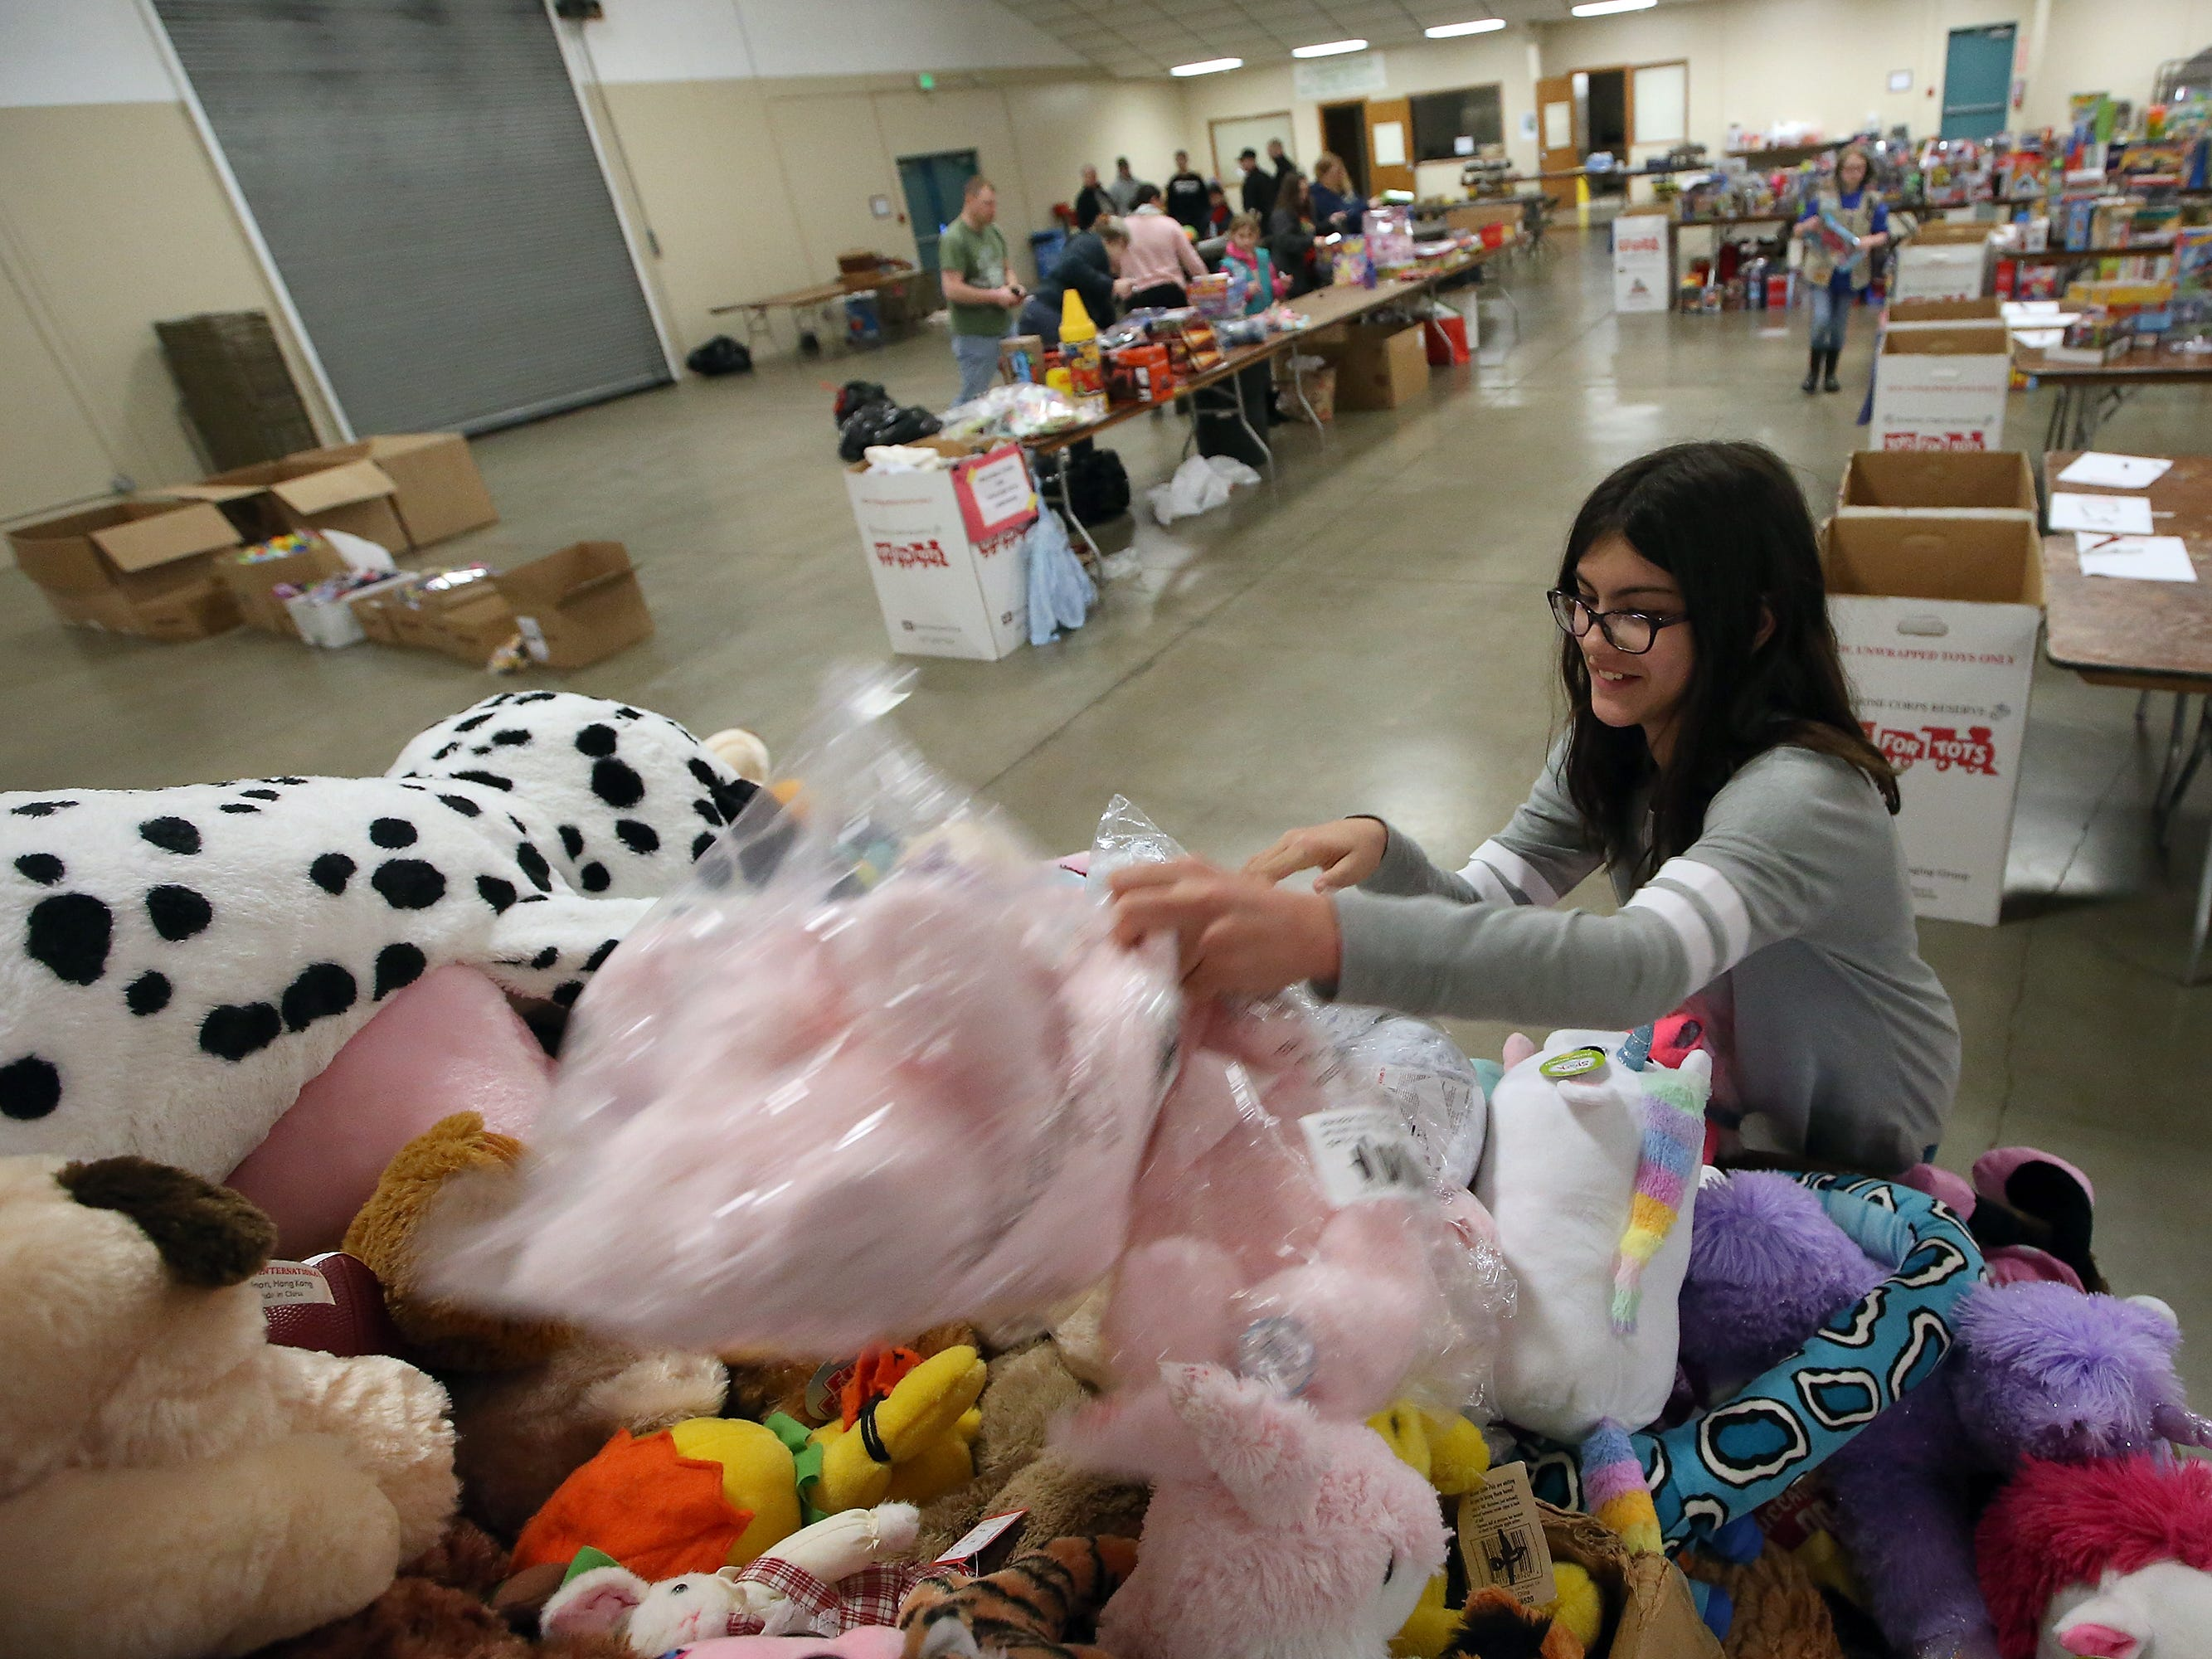 Hailey Hawk, 11, tosses a few teddy bears on to the top of the stuffed animal pile as she helps set up for the upcoming Toys For Tots event in President's Hall at the Kitsap County Fairgrounds on Wednesday, December 12, 2018. This is the second year that Hailey has helped out with the event.